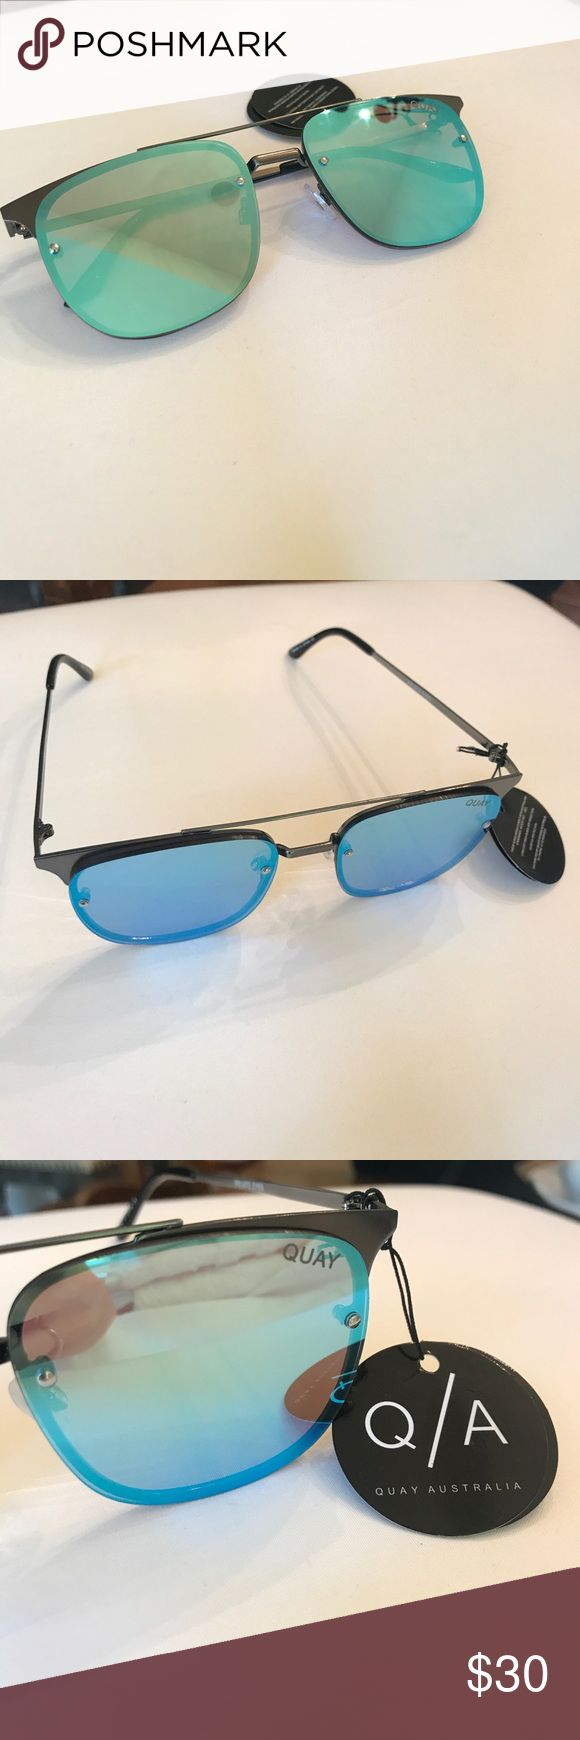 Quay Private Eyes sunglasses Quay Private Eyes sunglasses. PRIVATE EYES is the perfect balance of allure with attitude, set inside a sleek metal frame and winged at the temples. Lenses are blue mirrored. NWT never worn!!! Will ship in original packaging with case. Quay Australia Accessories Sunglasses